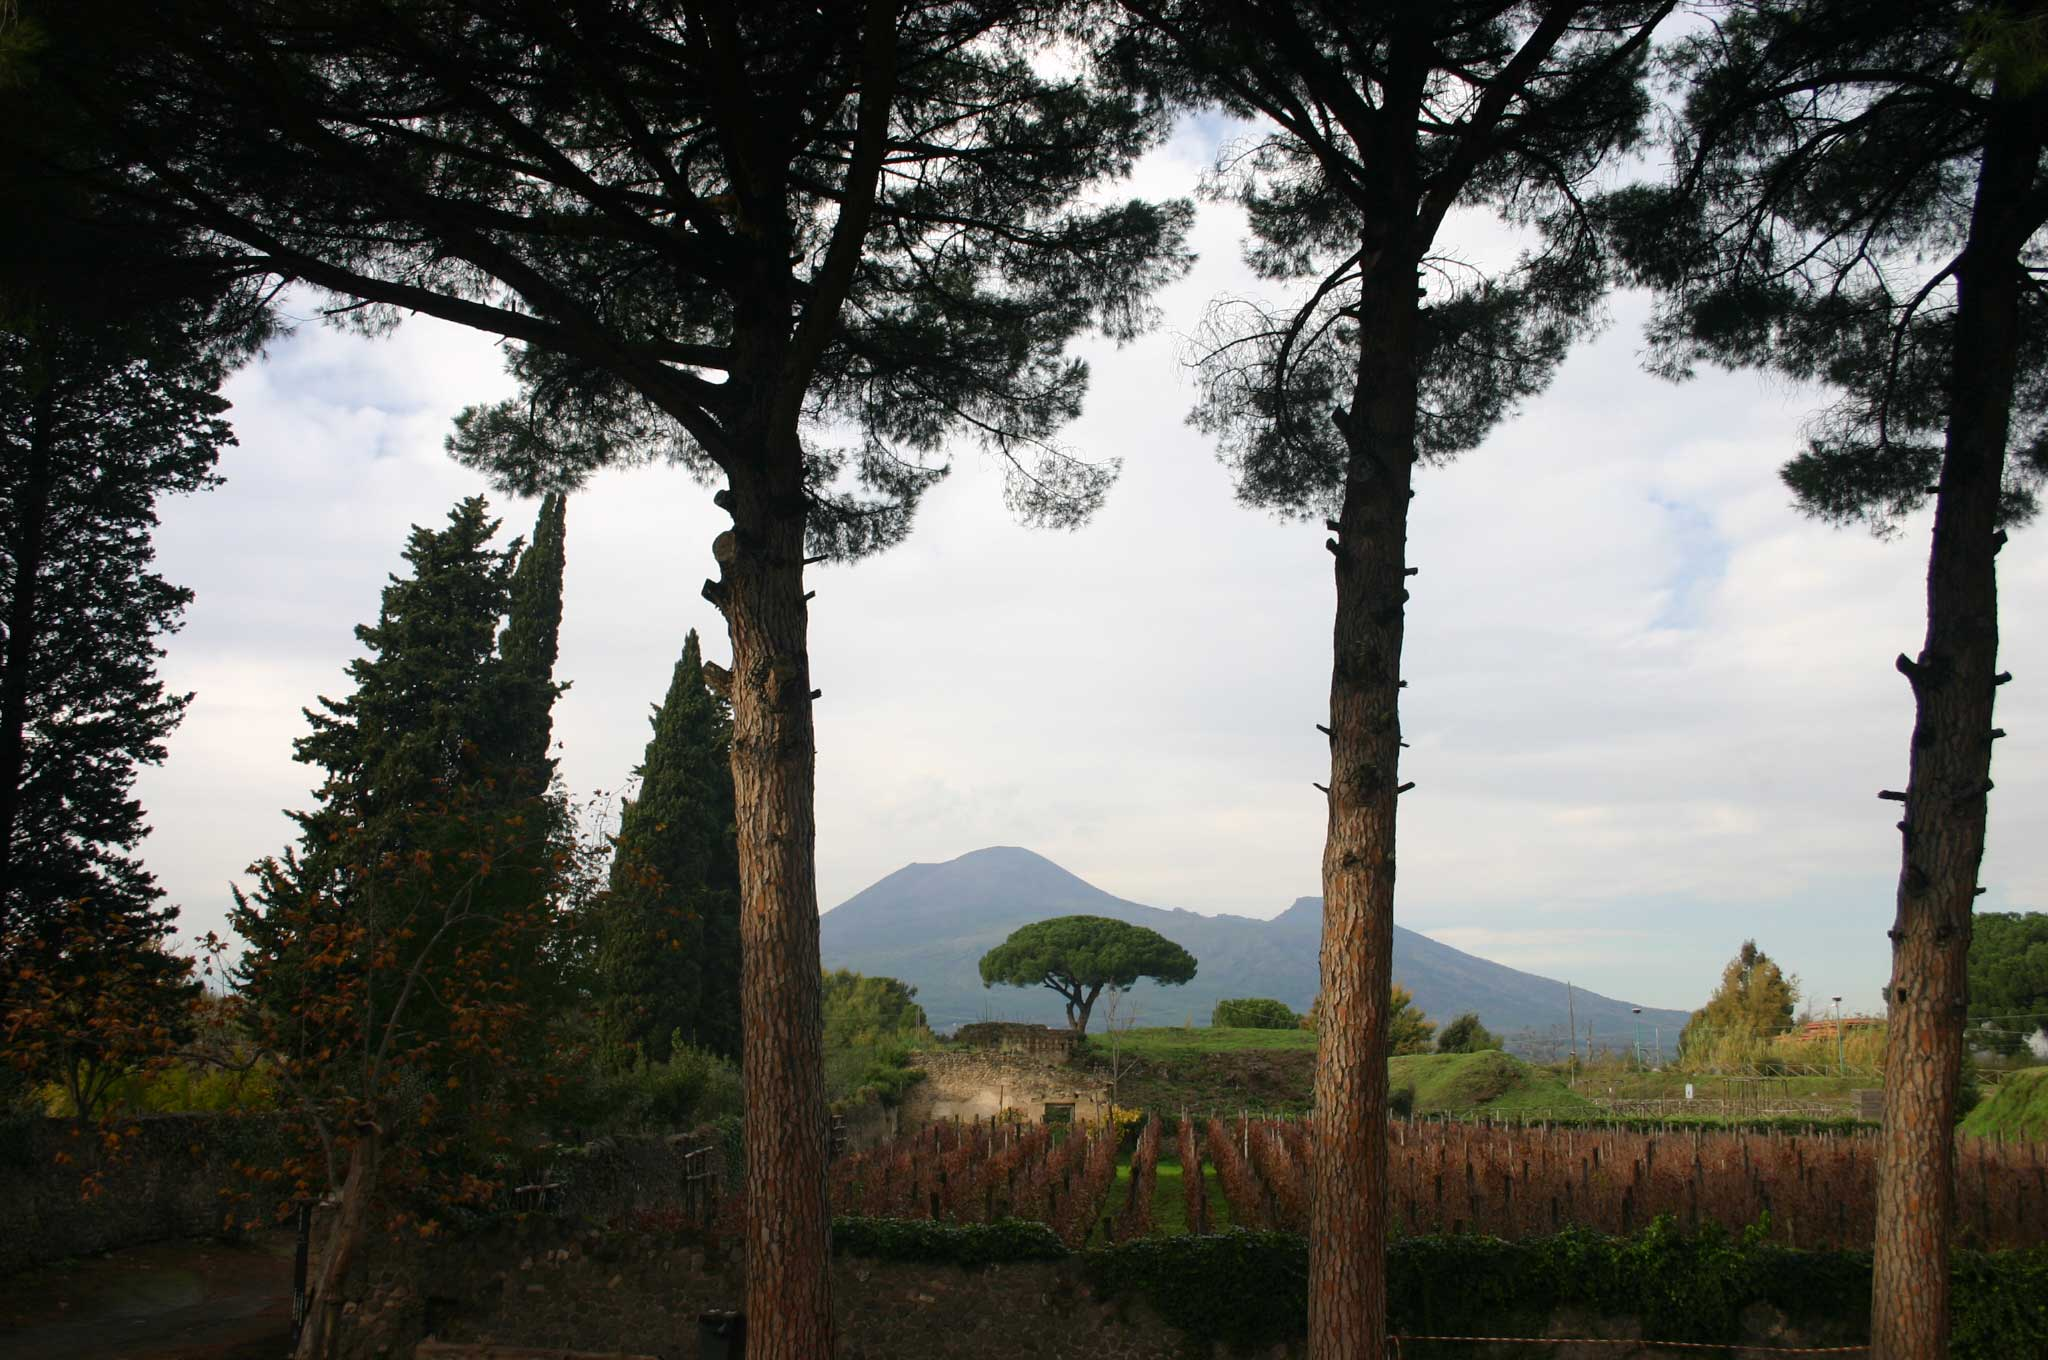 Pompeii - Vesuvius through the trees - © William Mackesy